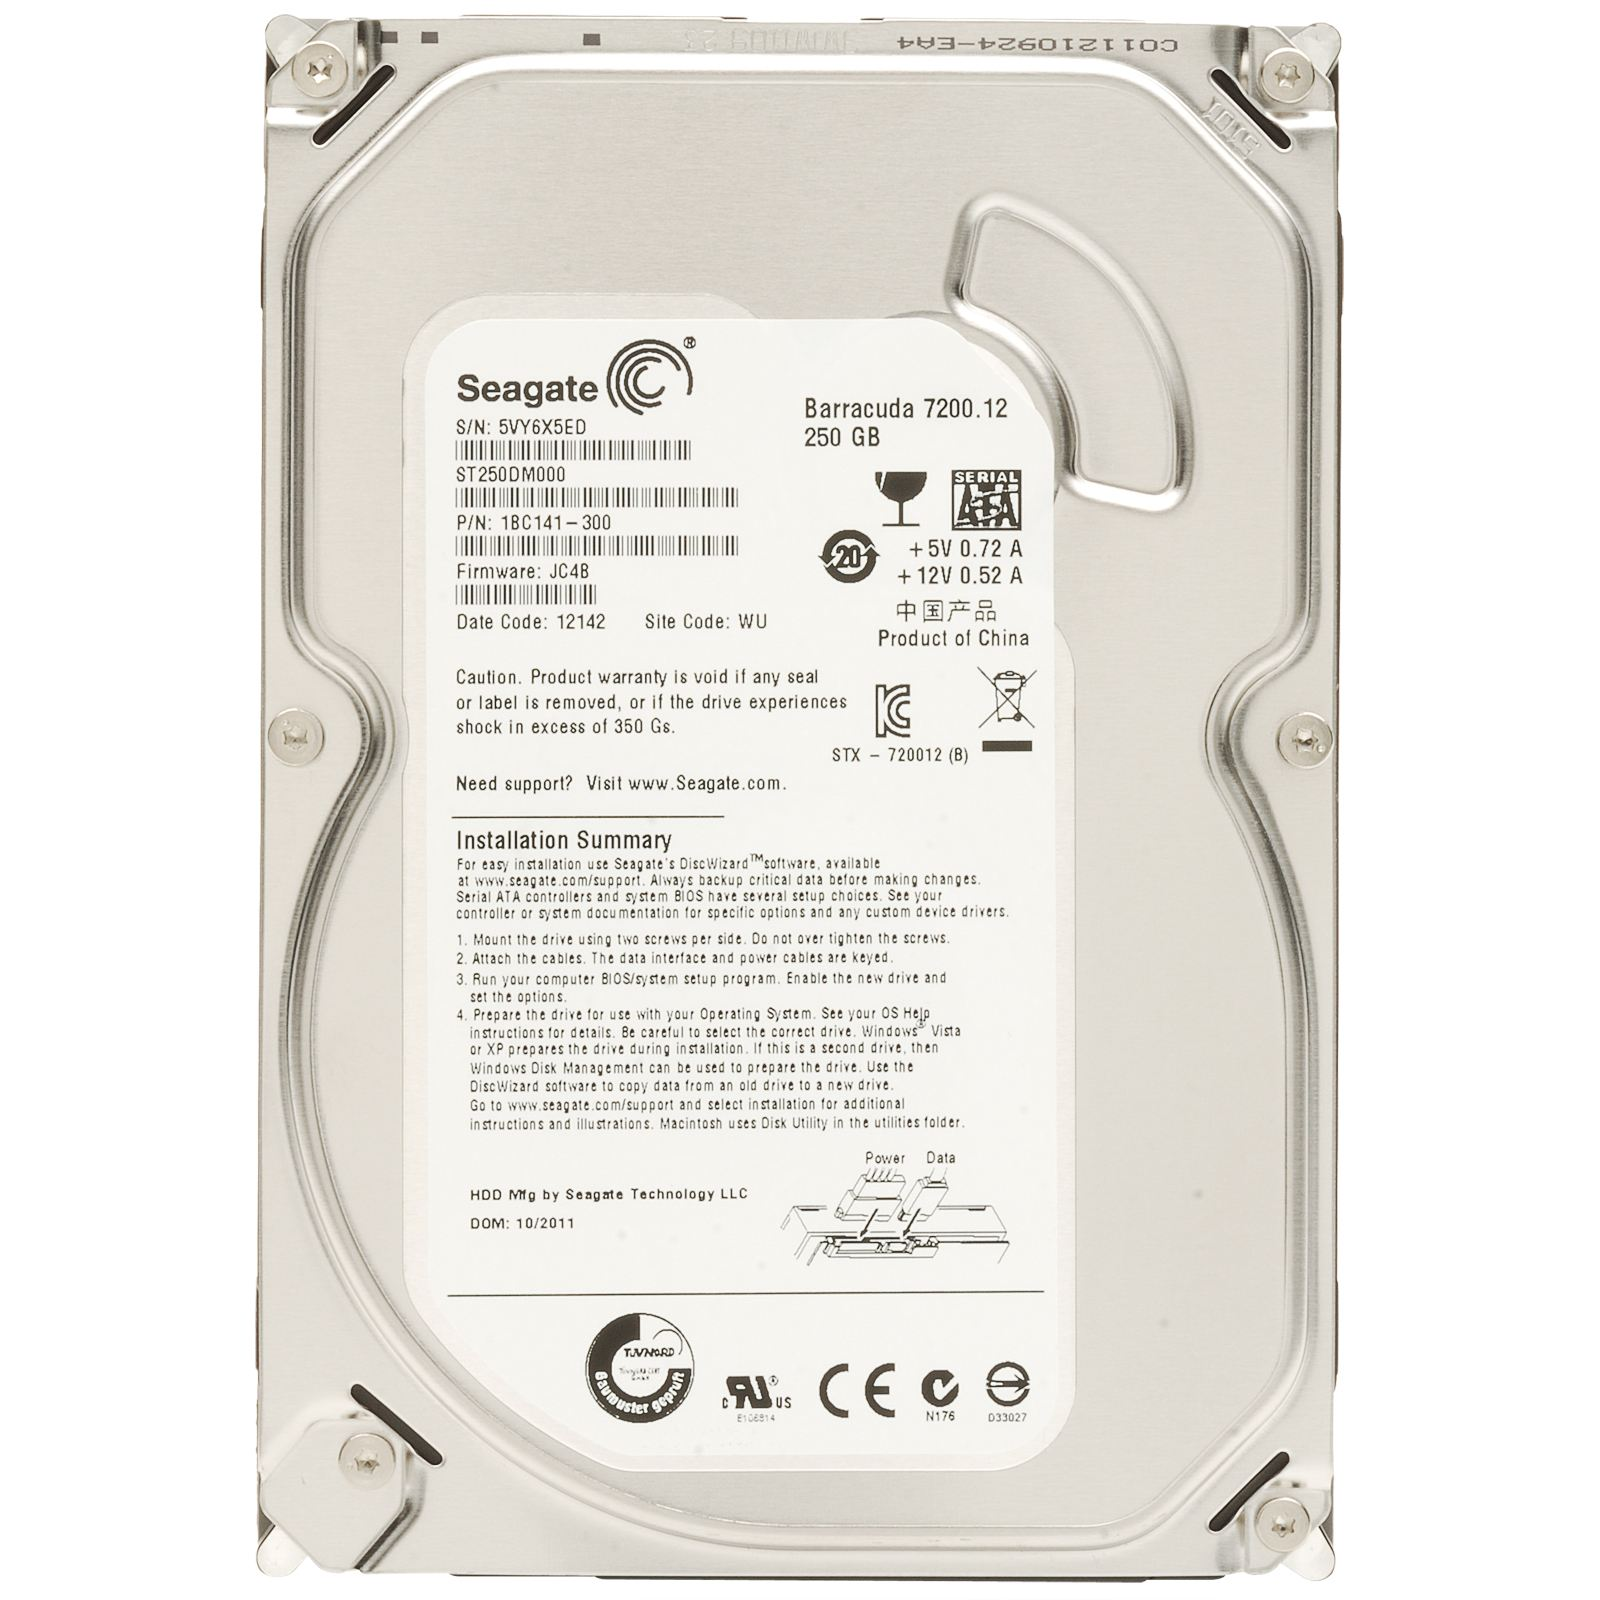 Жесткий диск SEAGATE ST250DM000 250GB SATA 7200RPM 6GB/S 16MB от Ravta